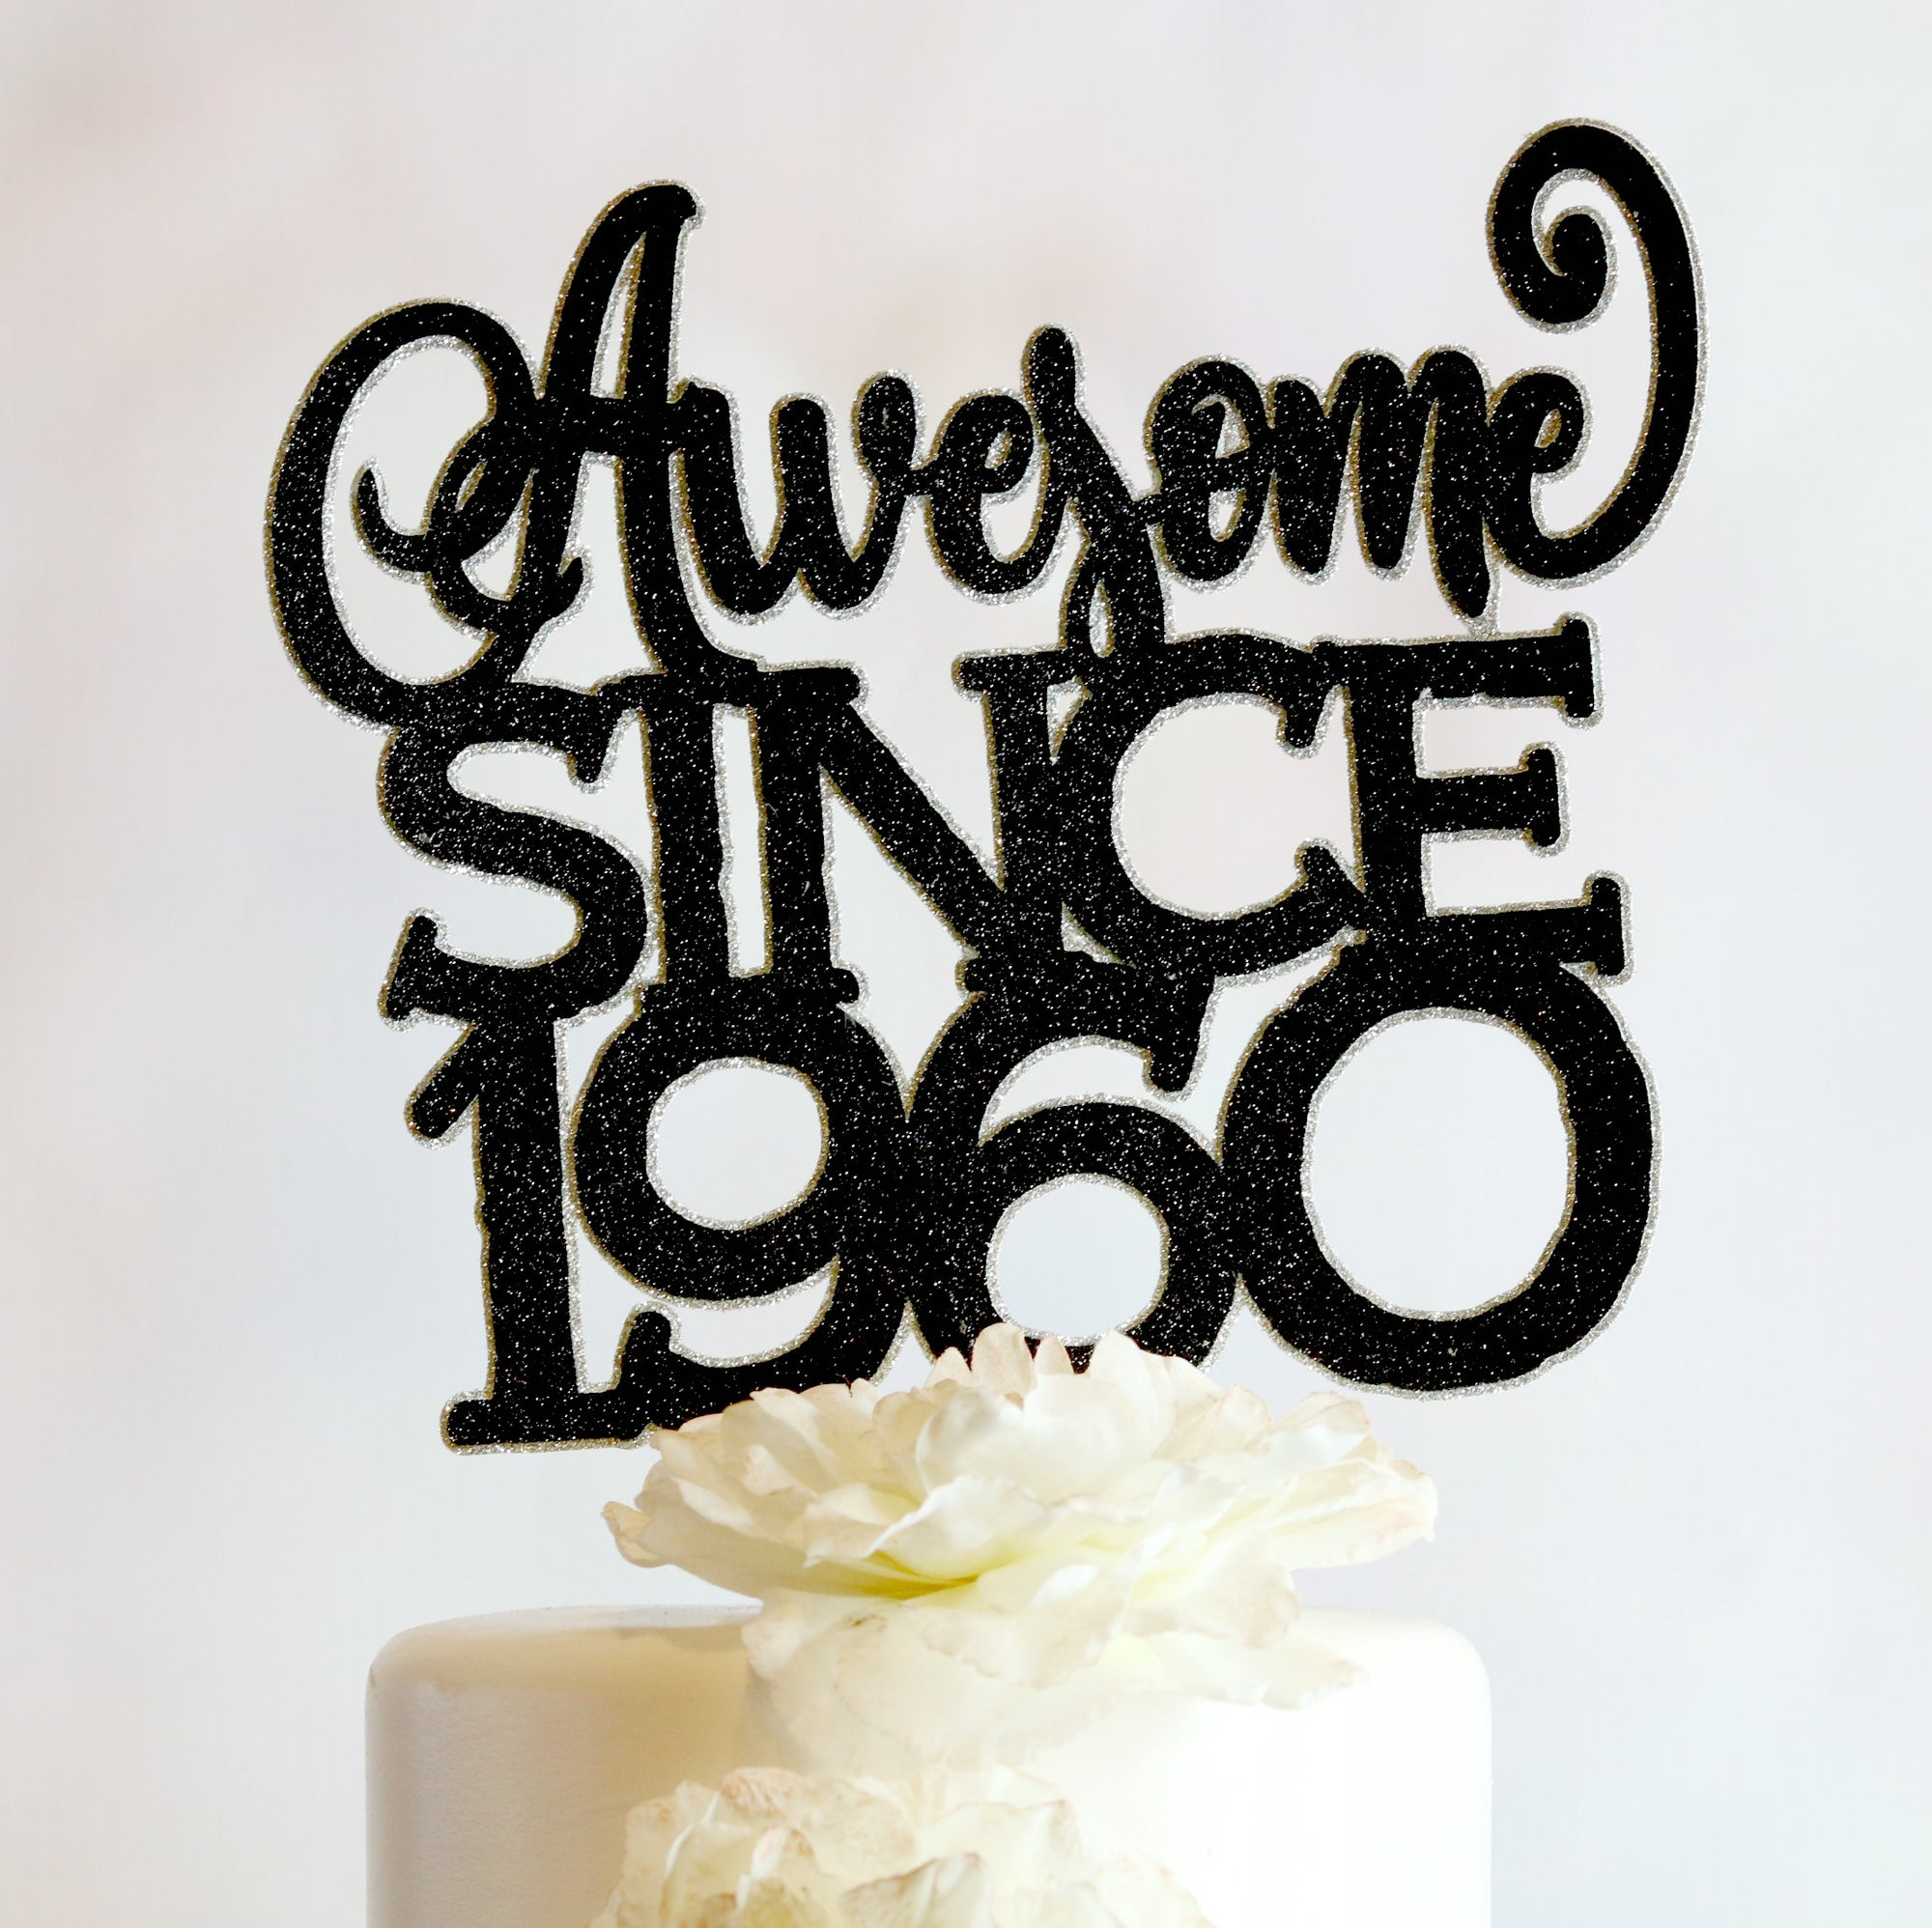 Awesome Since 1960 Cake Topper - Memory Keepsake Parties